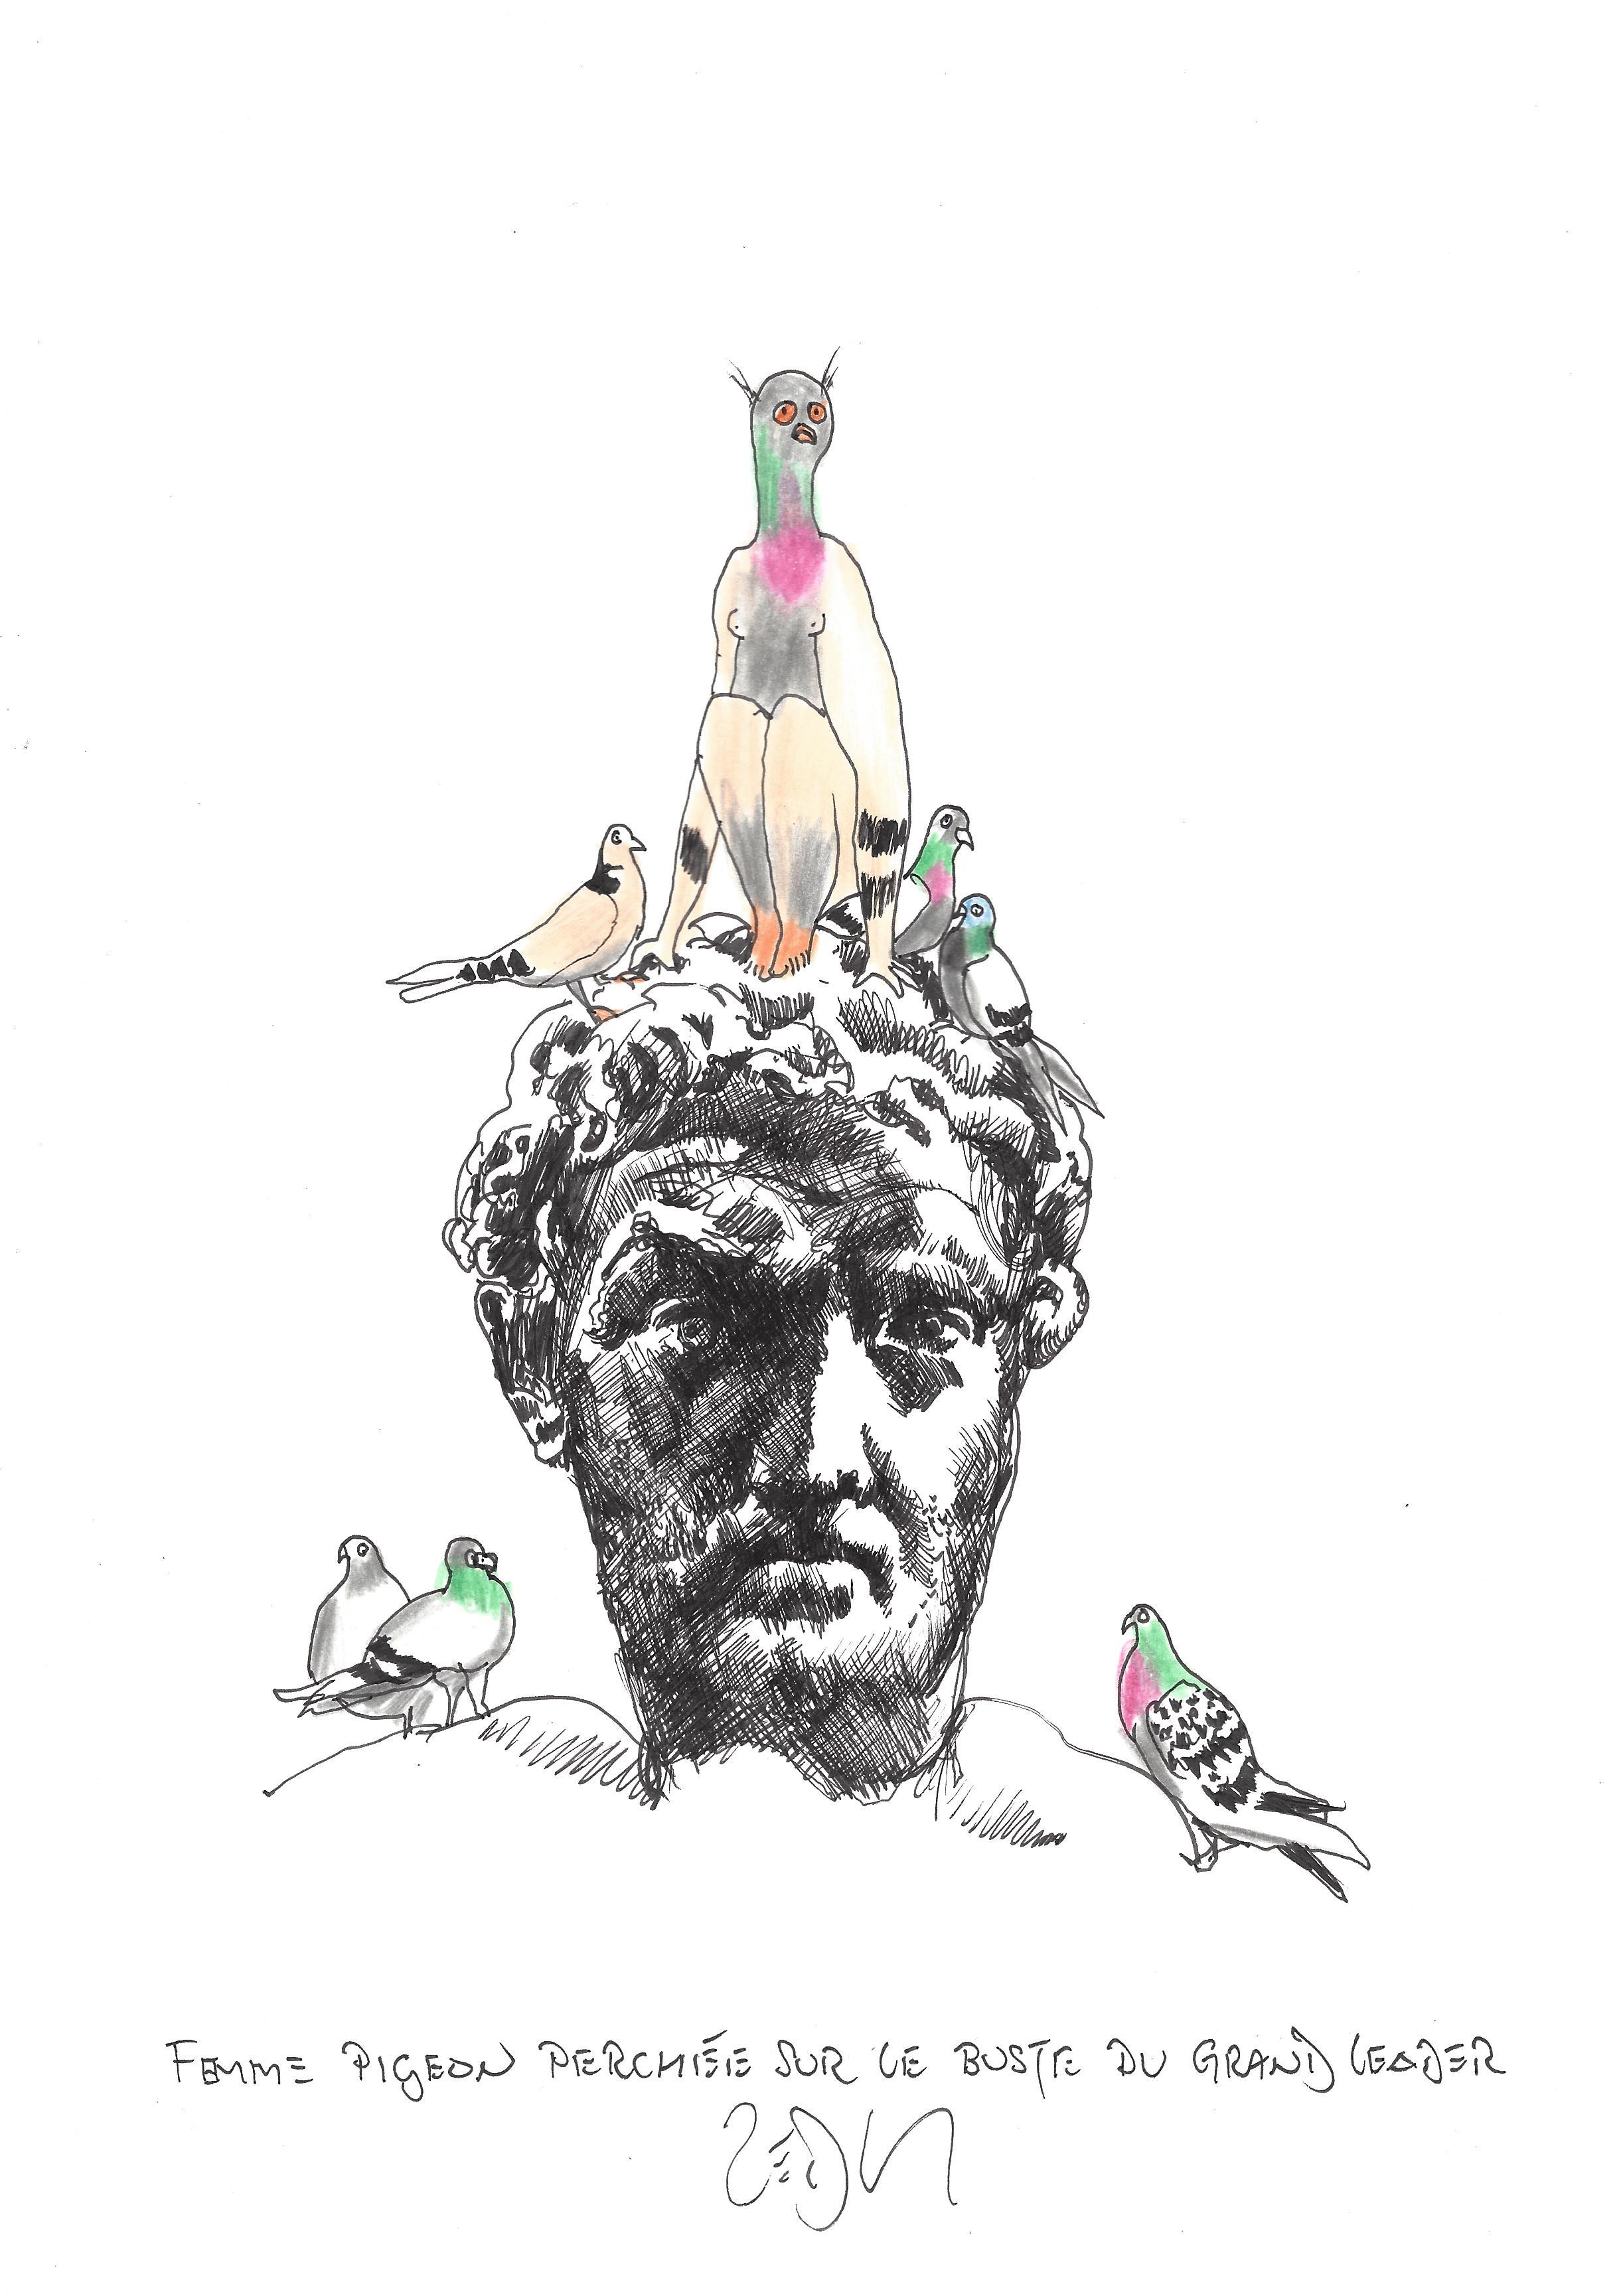 « Pigeon lady perches on the bust of the great leader – Femme pigeon perchee sur le buste du grand leader »